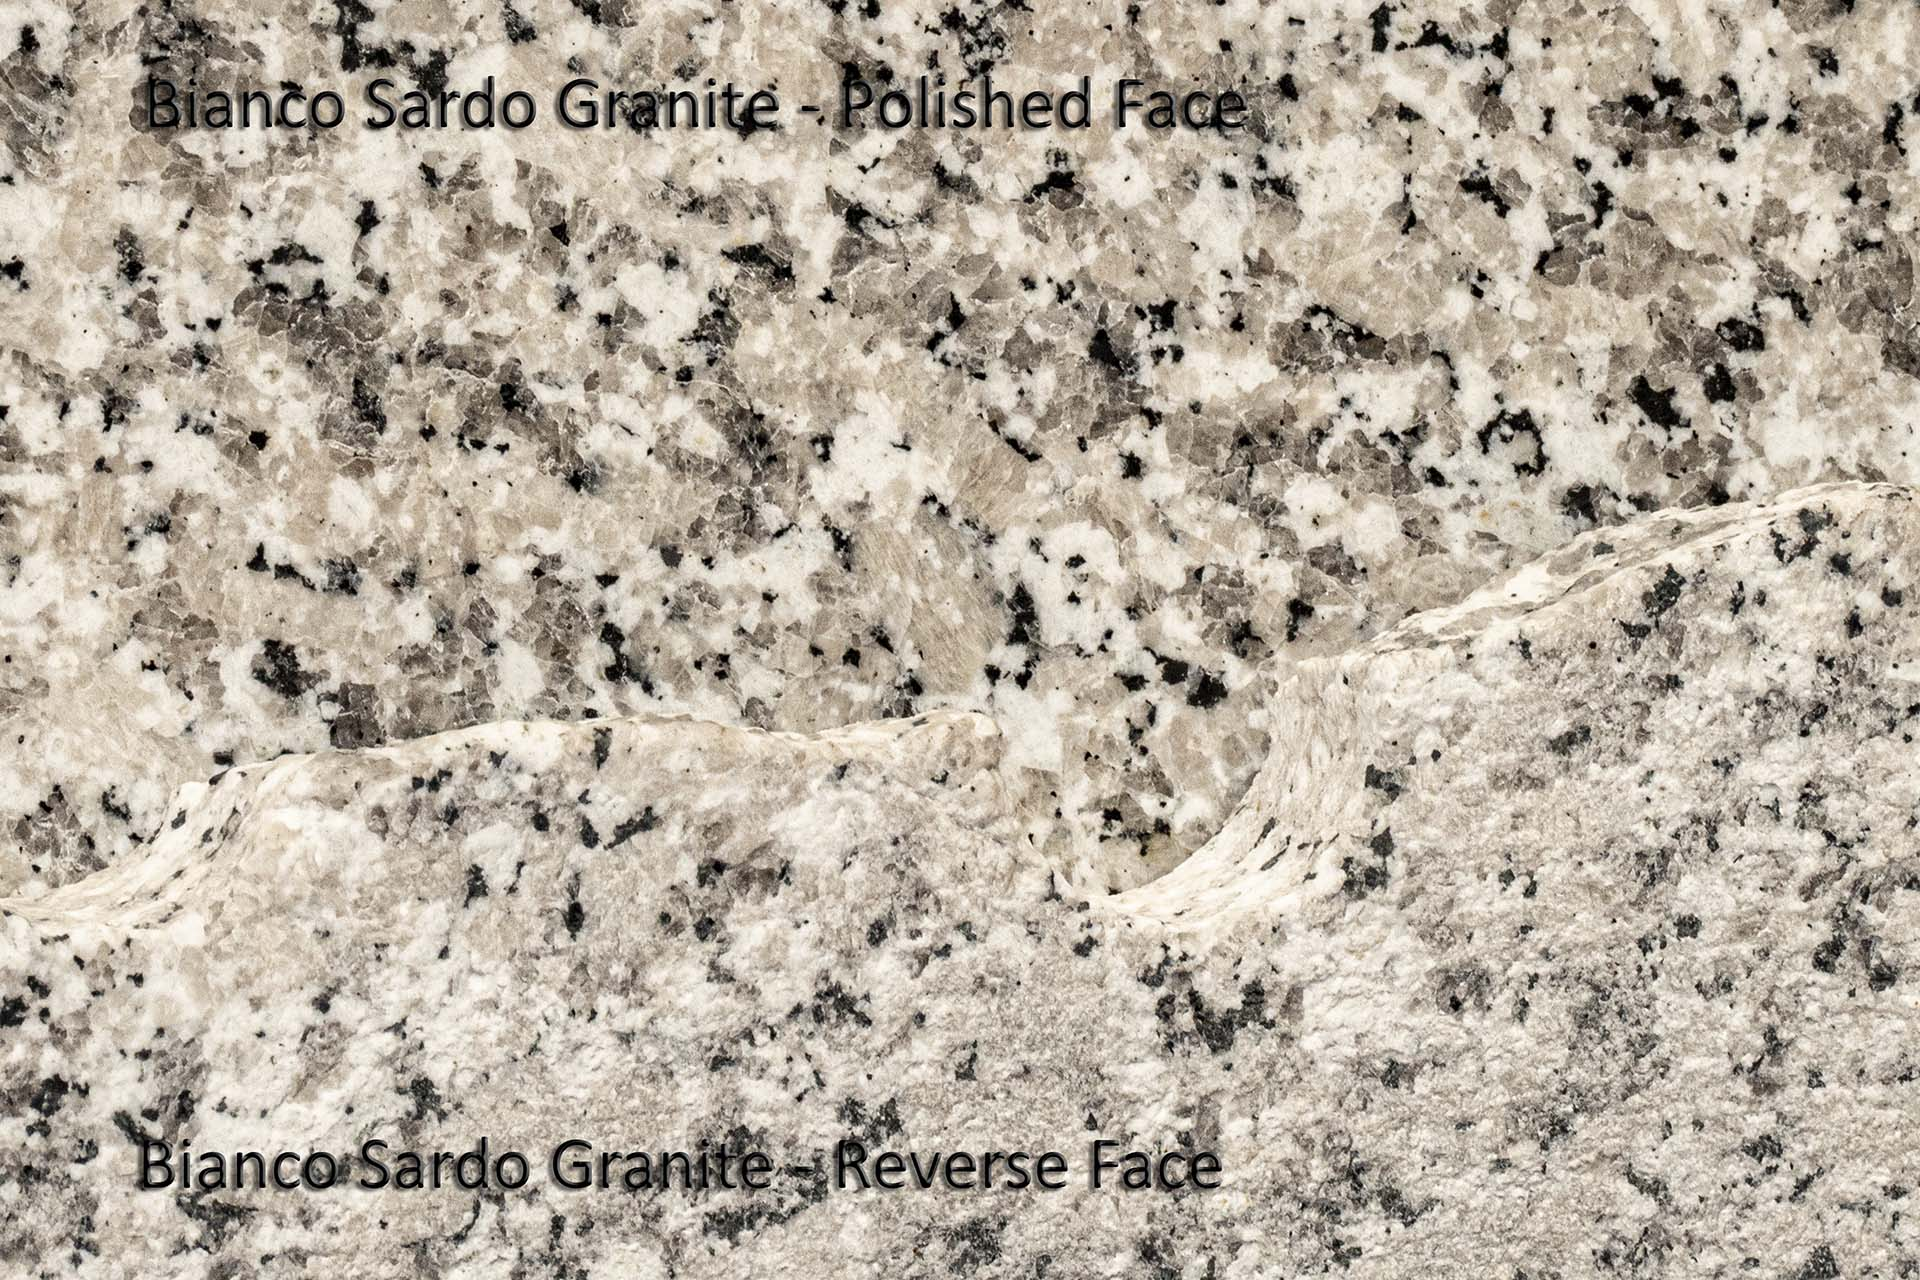 Bianco Sardo rough slab face jenny lind underpolishing